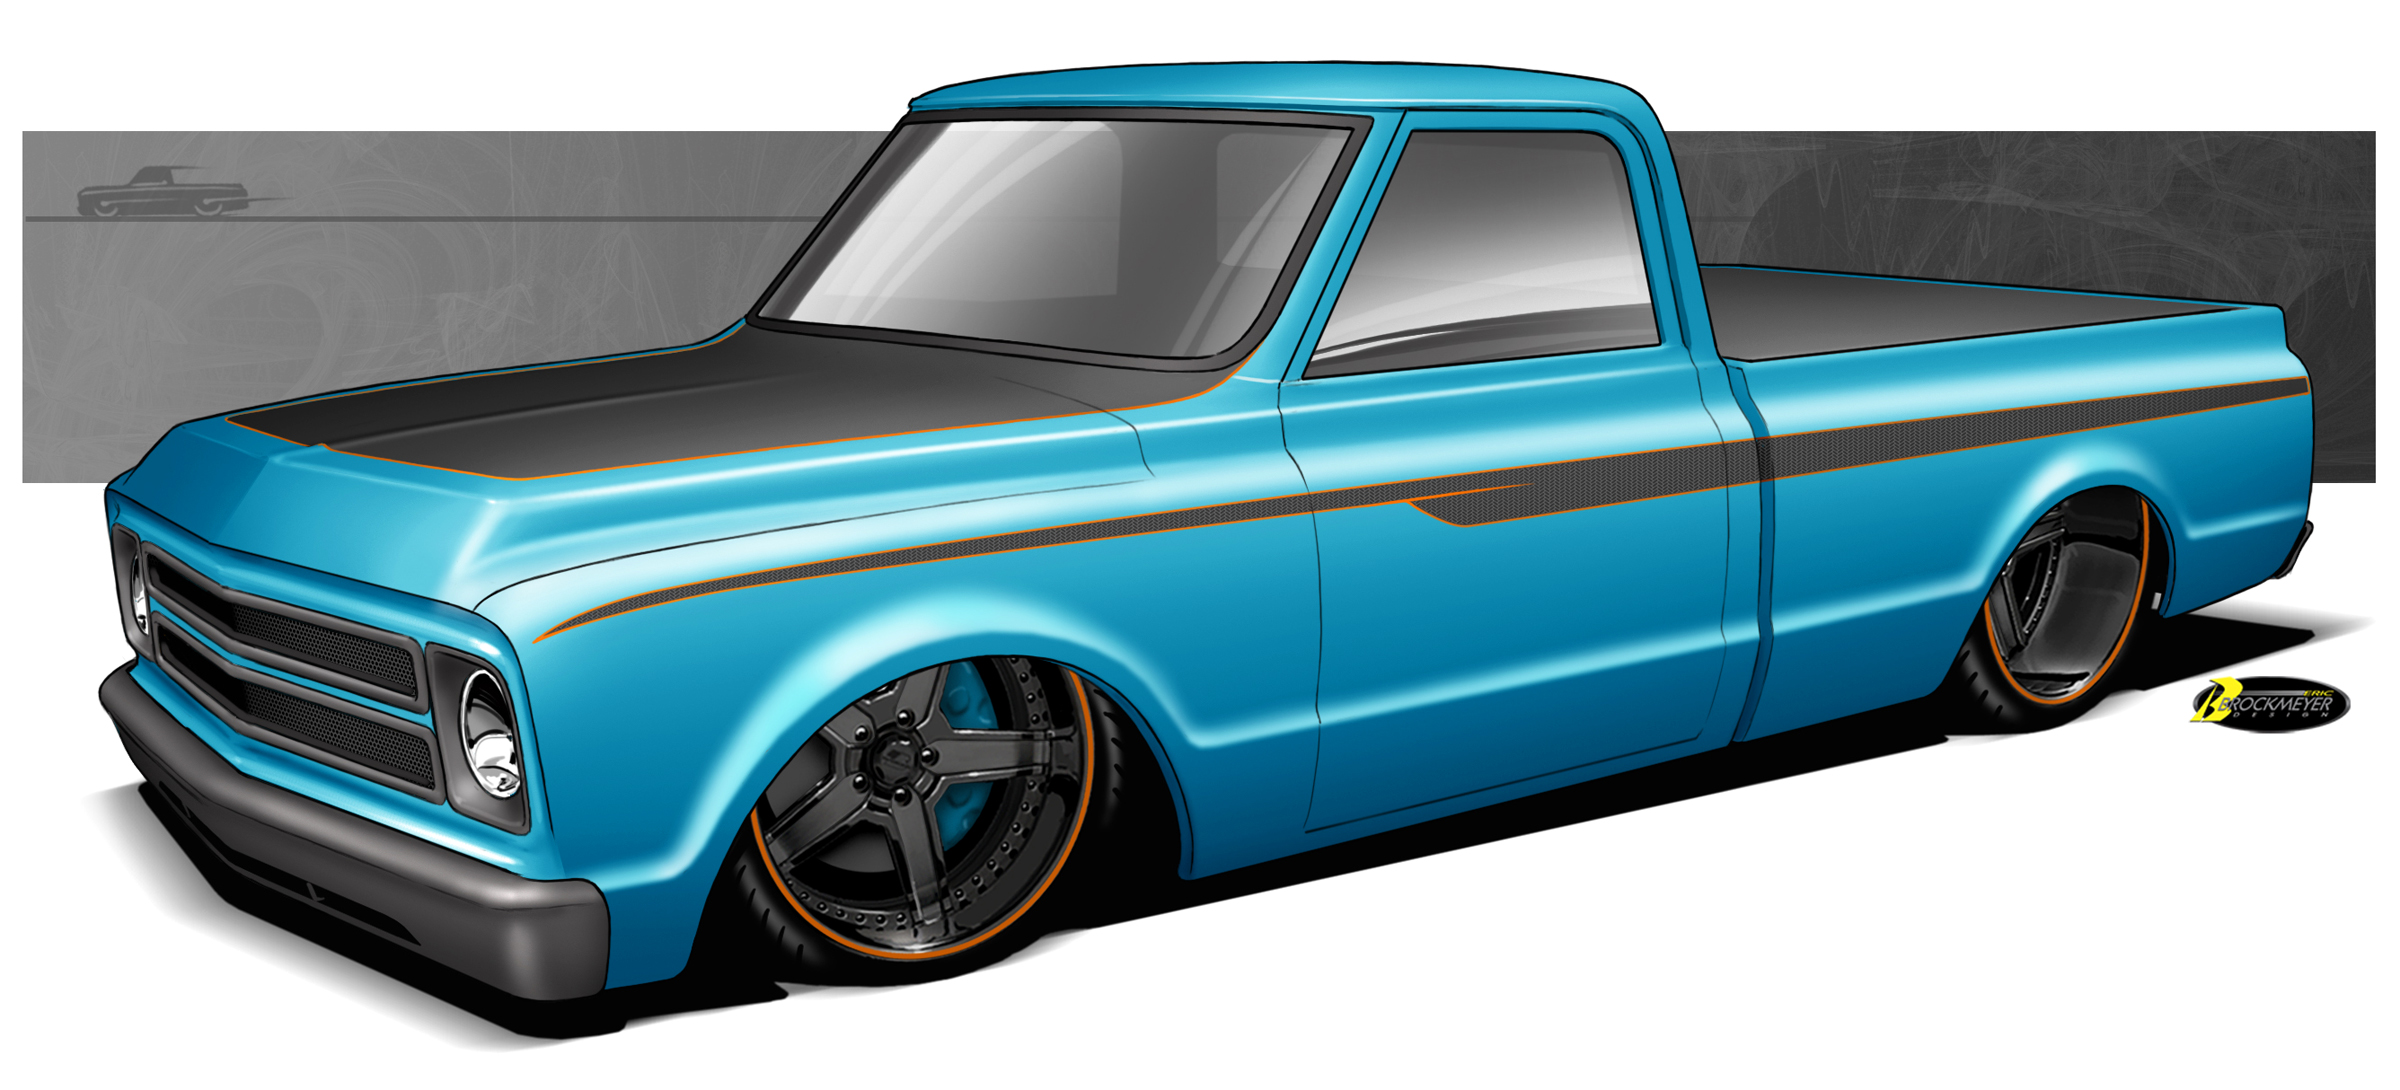 Chevy C10 Drawing At Free For Personal Use 1963 Volkswagen Beetle Wiring Harness 2400x1090 Scotts Hot Rods Project Rendering Cars